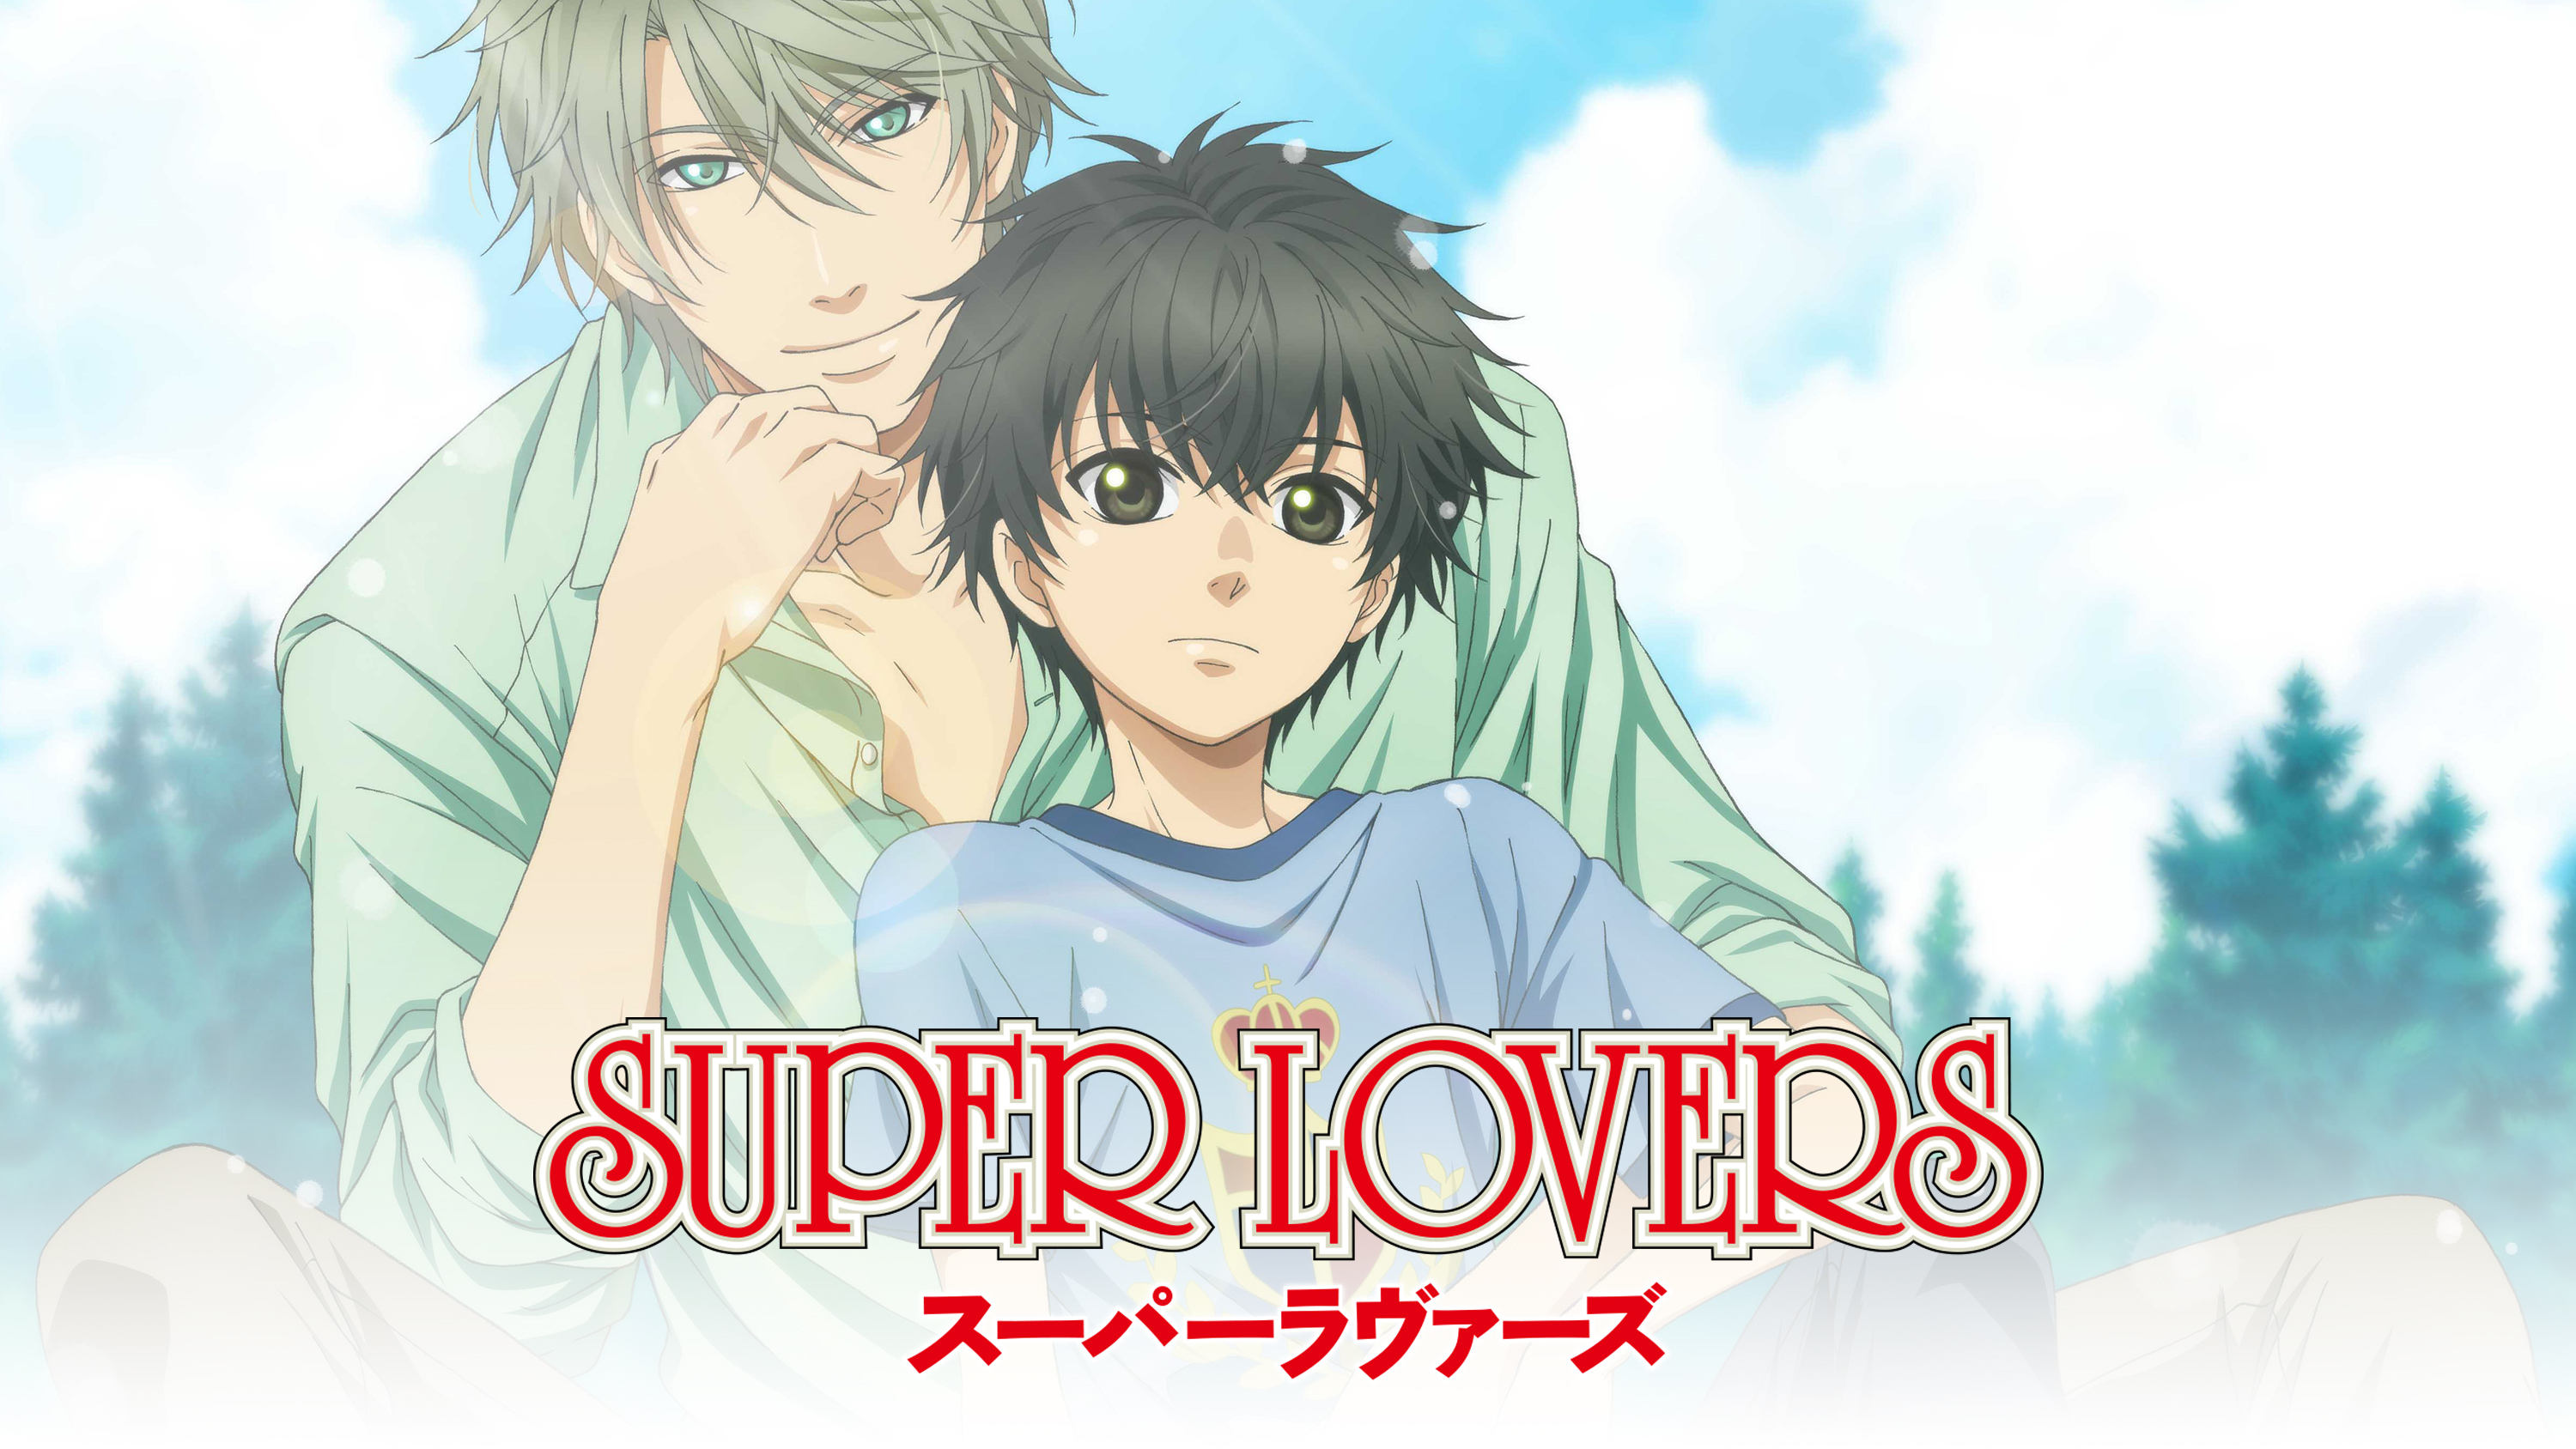 Super Lovers Hd Wallpaper Background Image 3000x1688 Id 1044689 Wallpaper Abyss